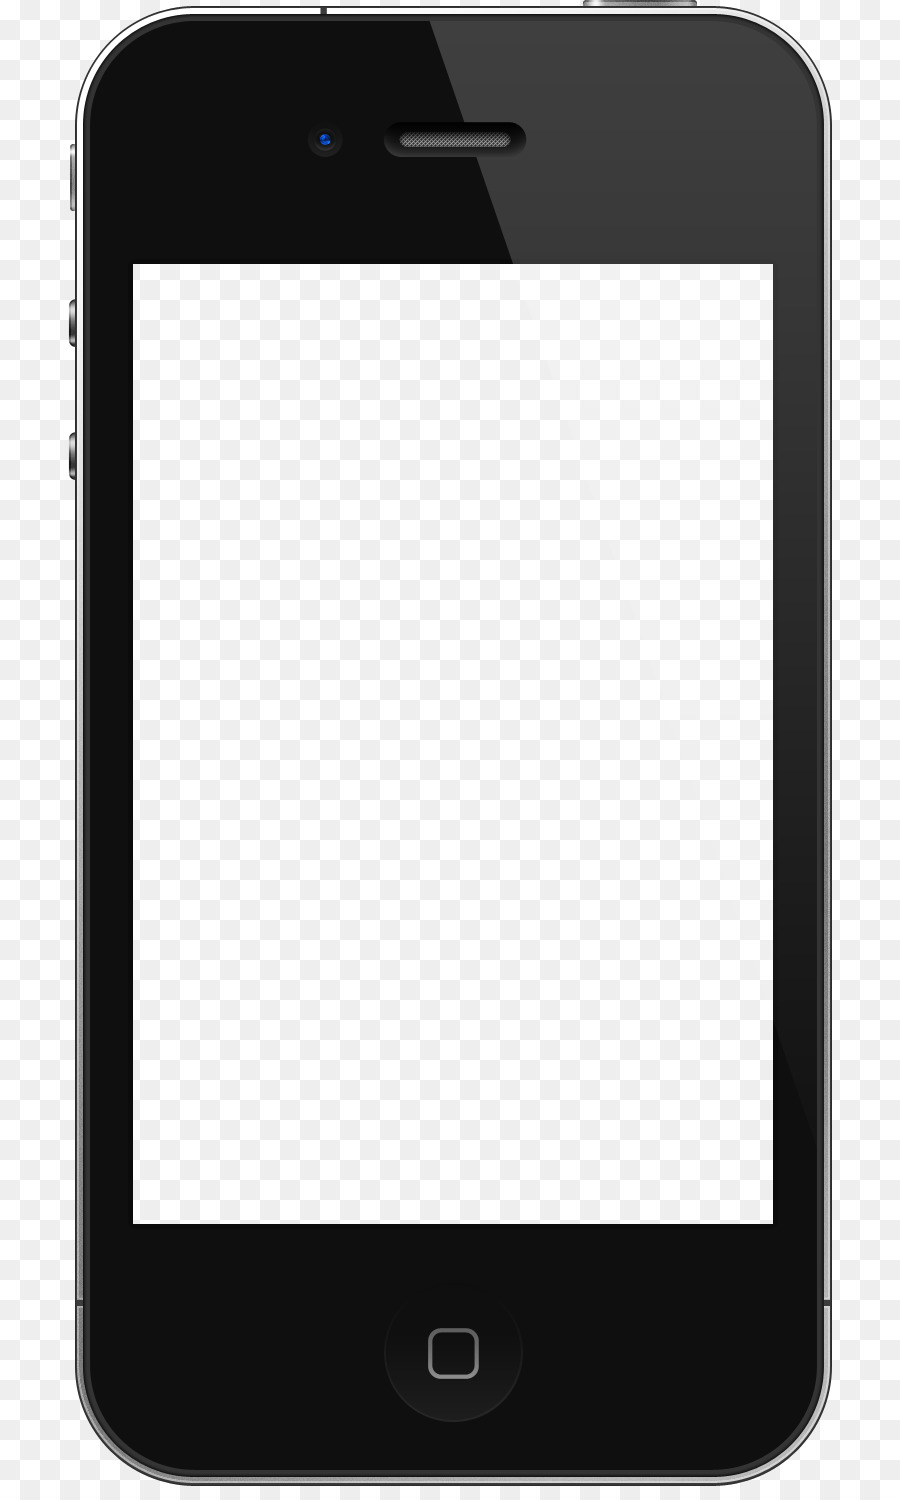 iPhone 4 iPhone 6 iPod touch Template - iphone apple png ...Iphone 4 Template